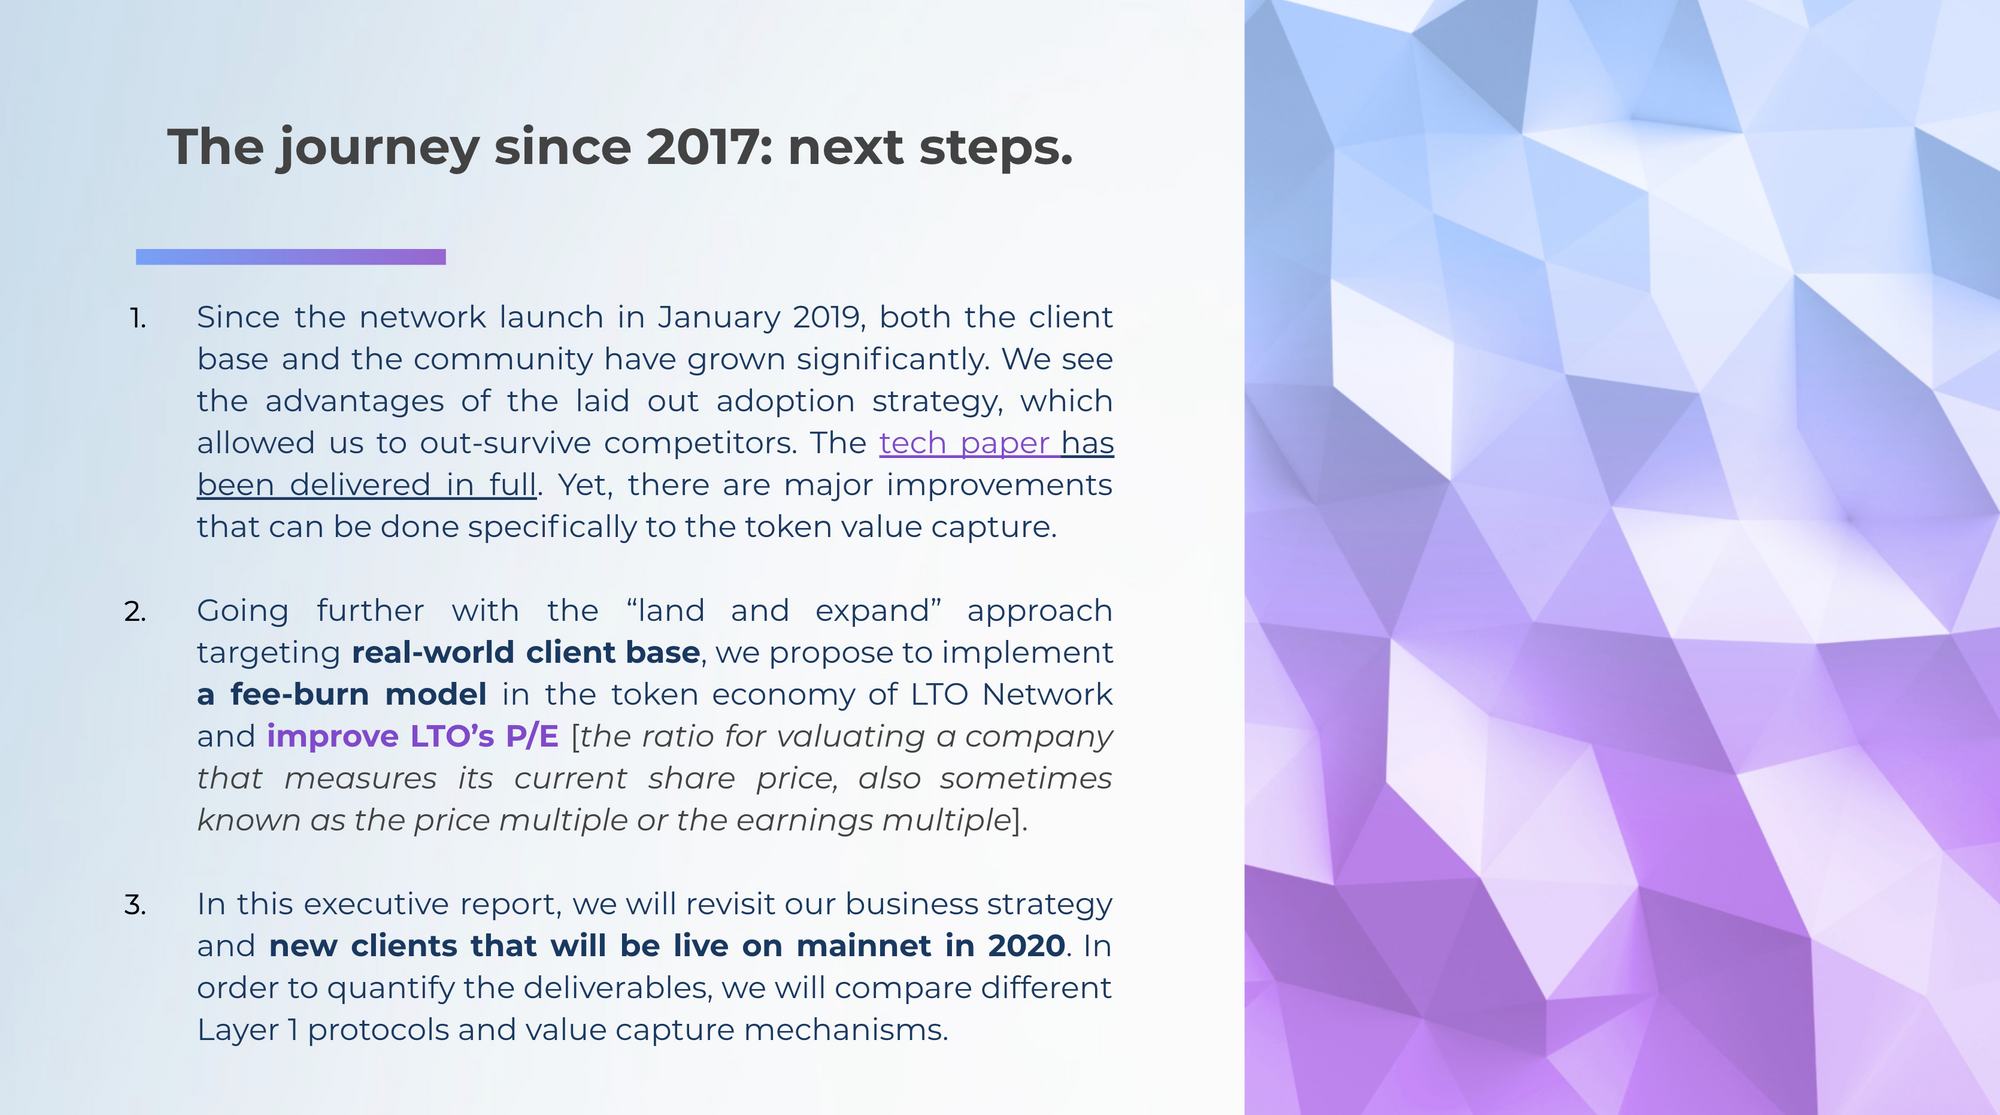 We have come a long way with the community since 2017, and have built out the tech stack which has been validated by multiple integrators. However, this is just the start for adoption!